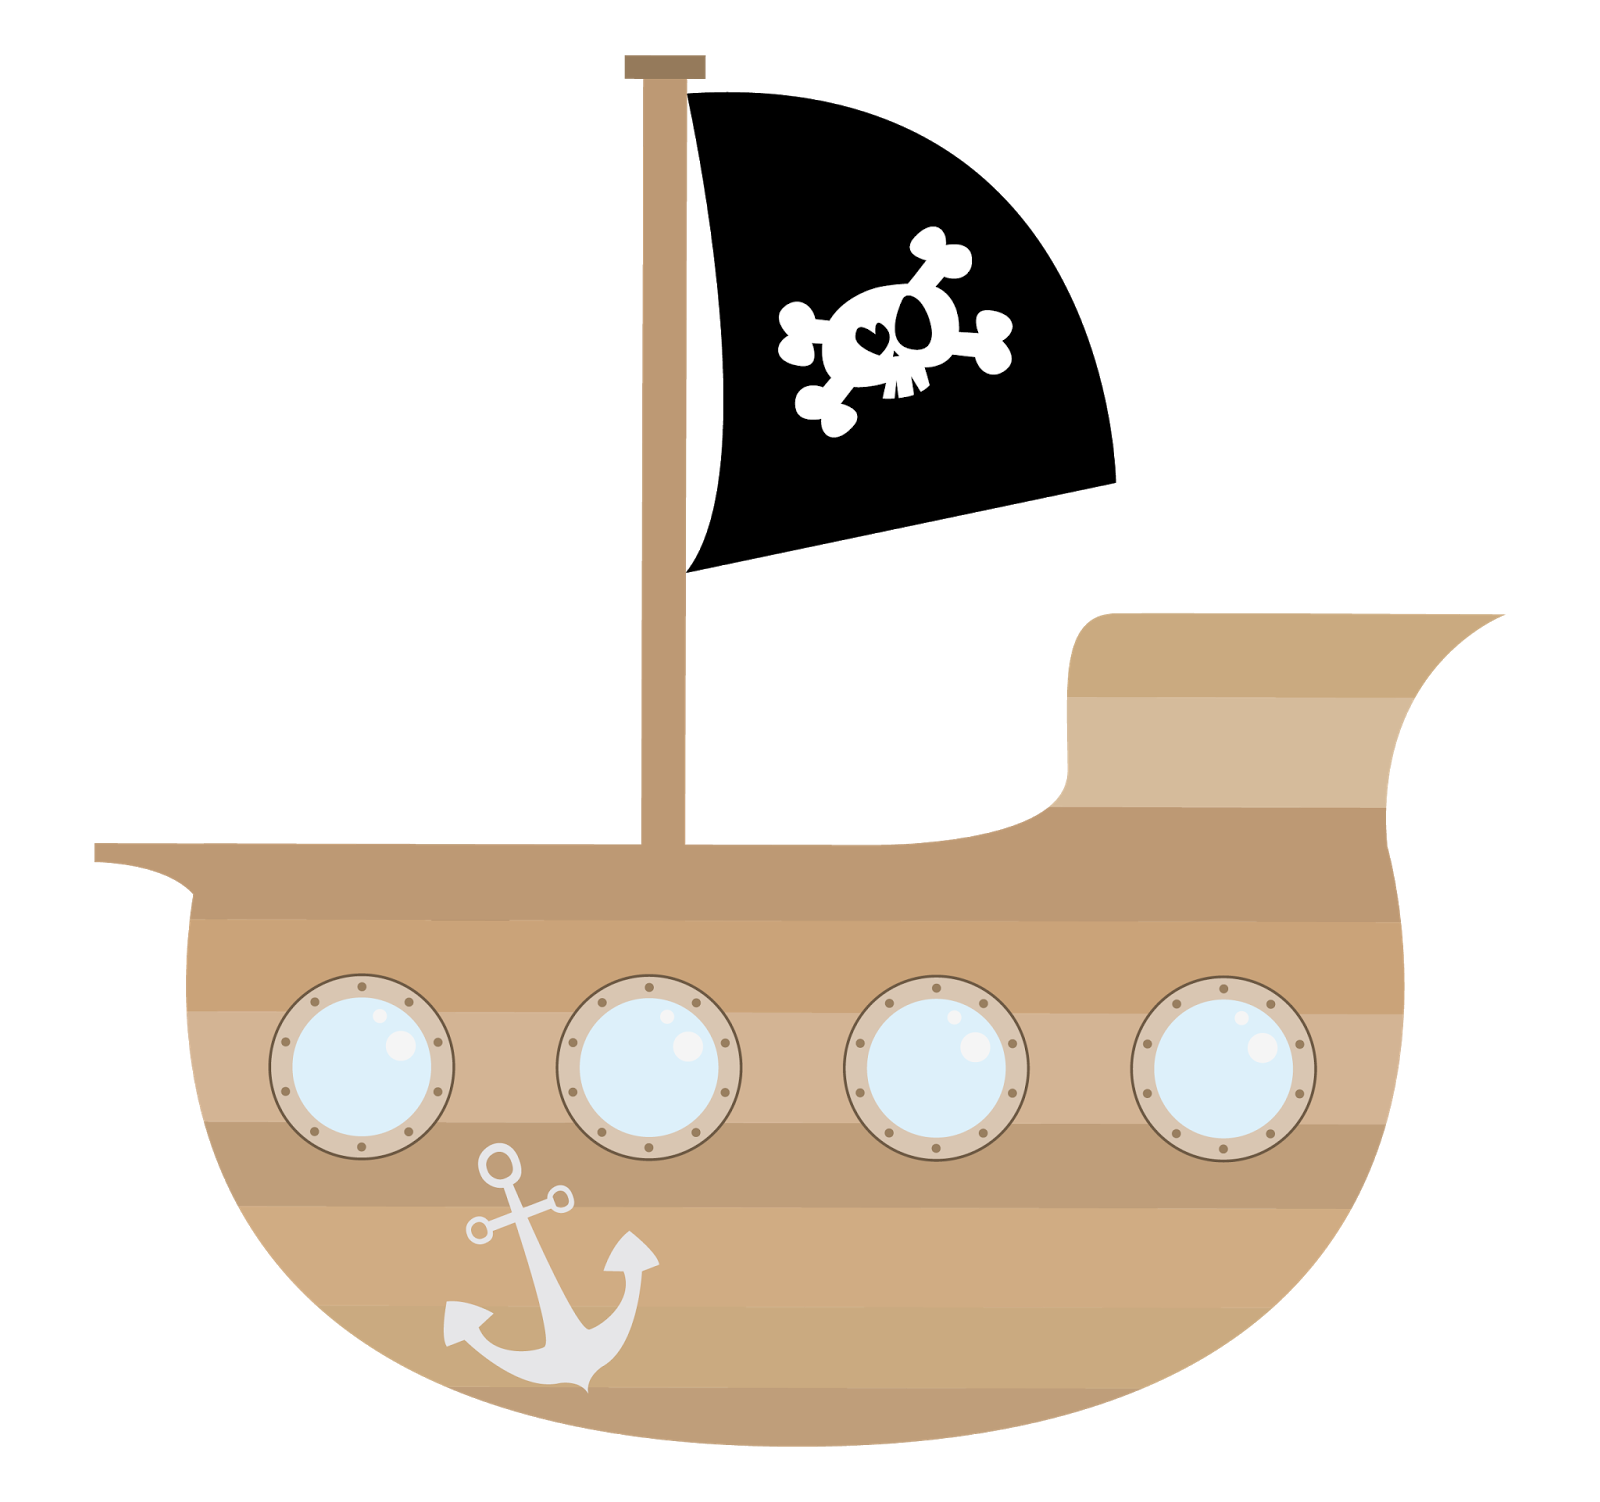 Pirate ship clipart 2 » Clipart Station.